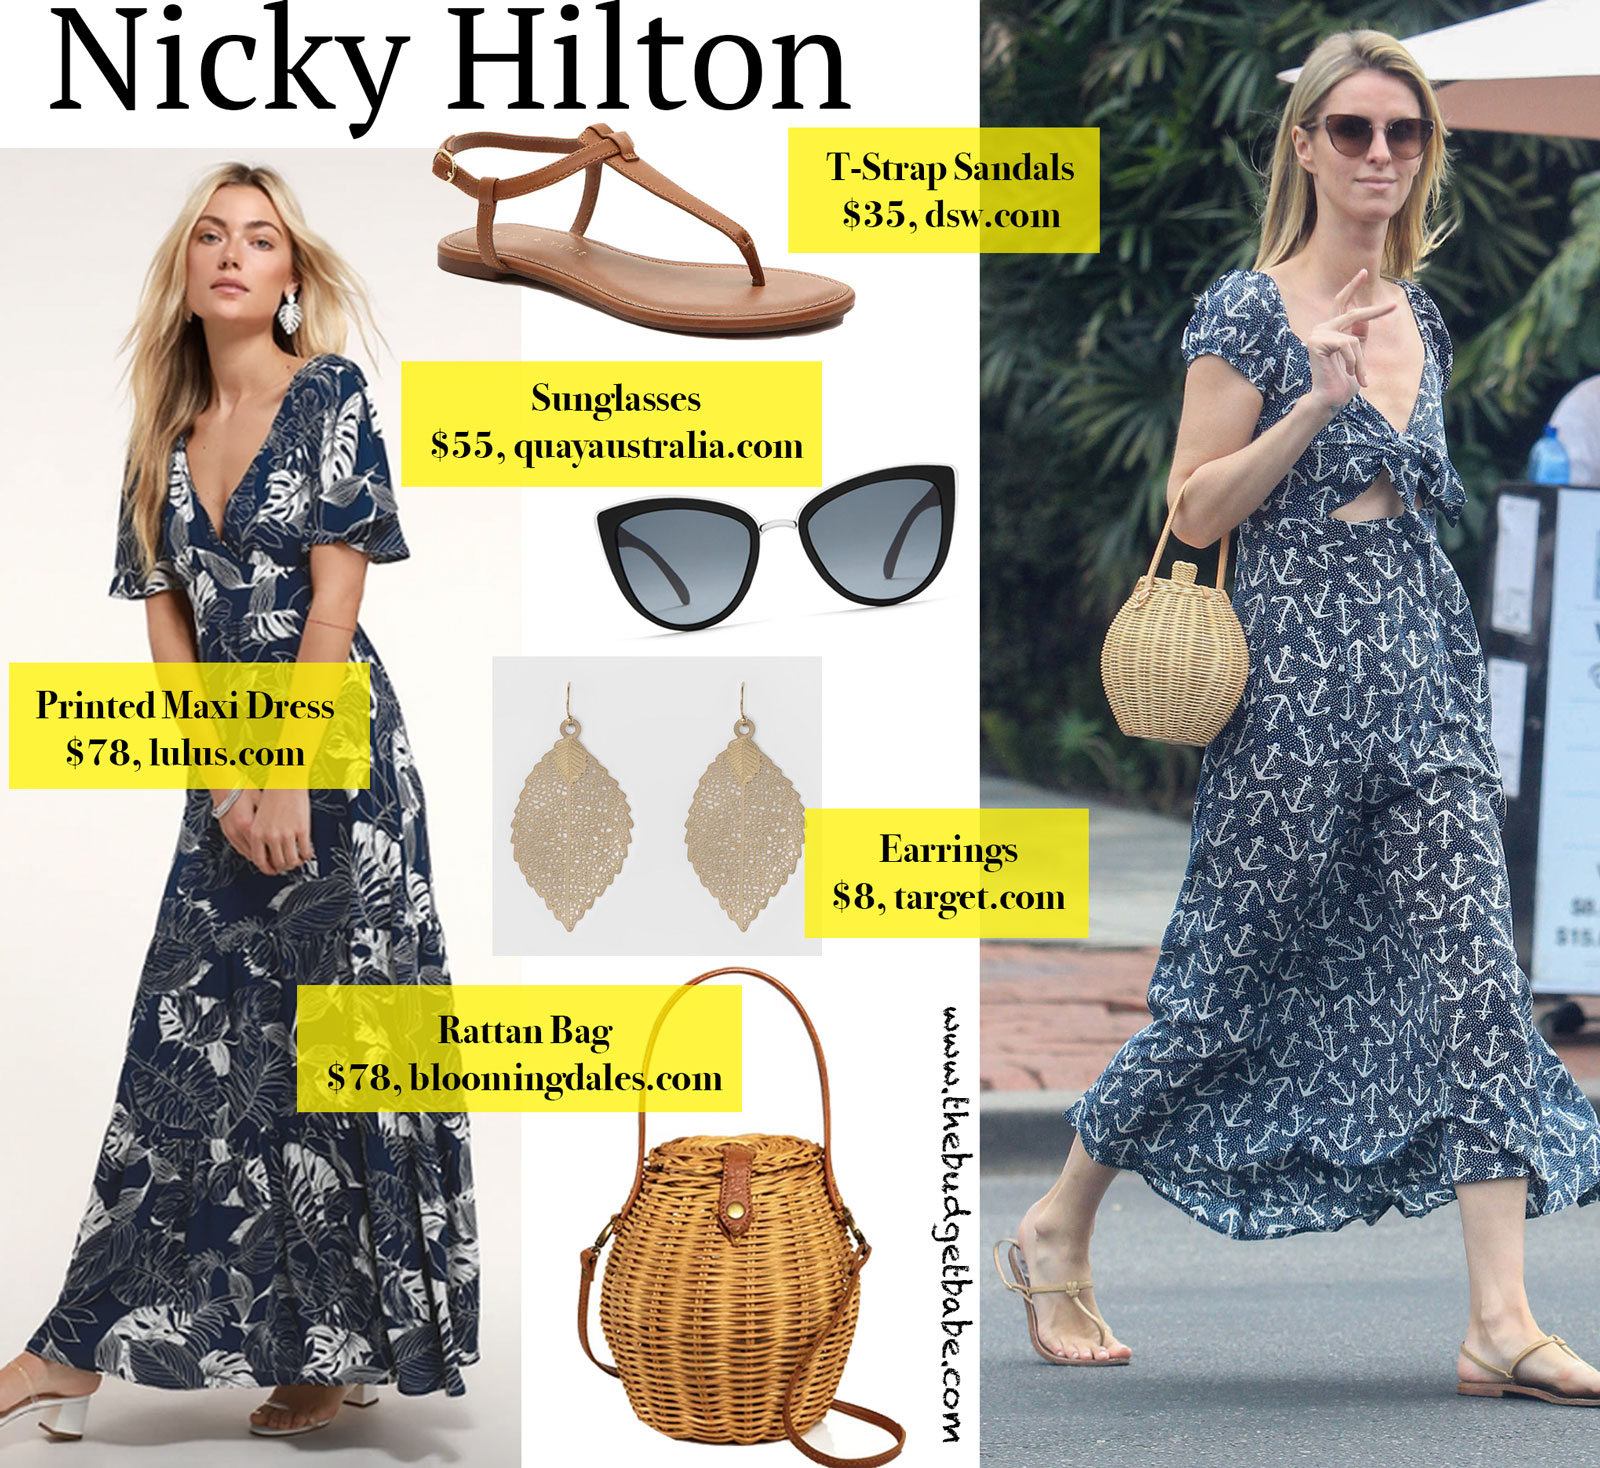 Nicky Hilton Maxi Dress and Rattan Bag Look for Less